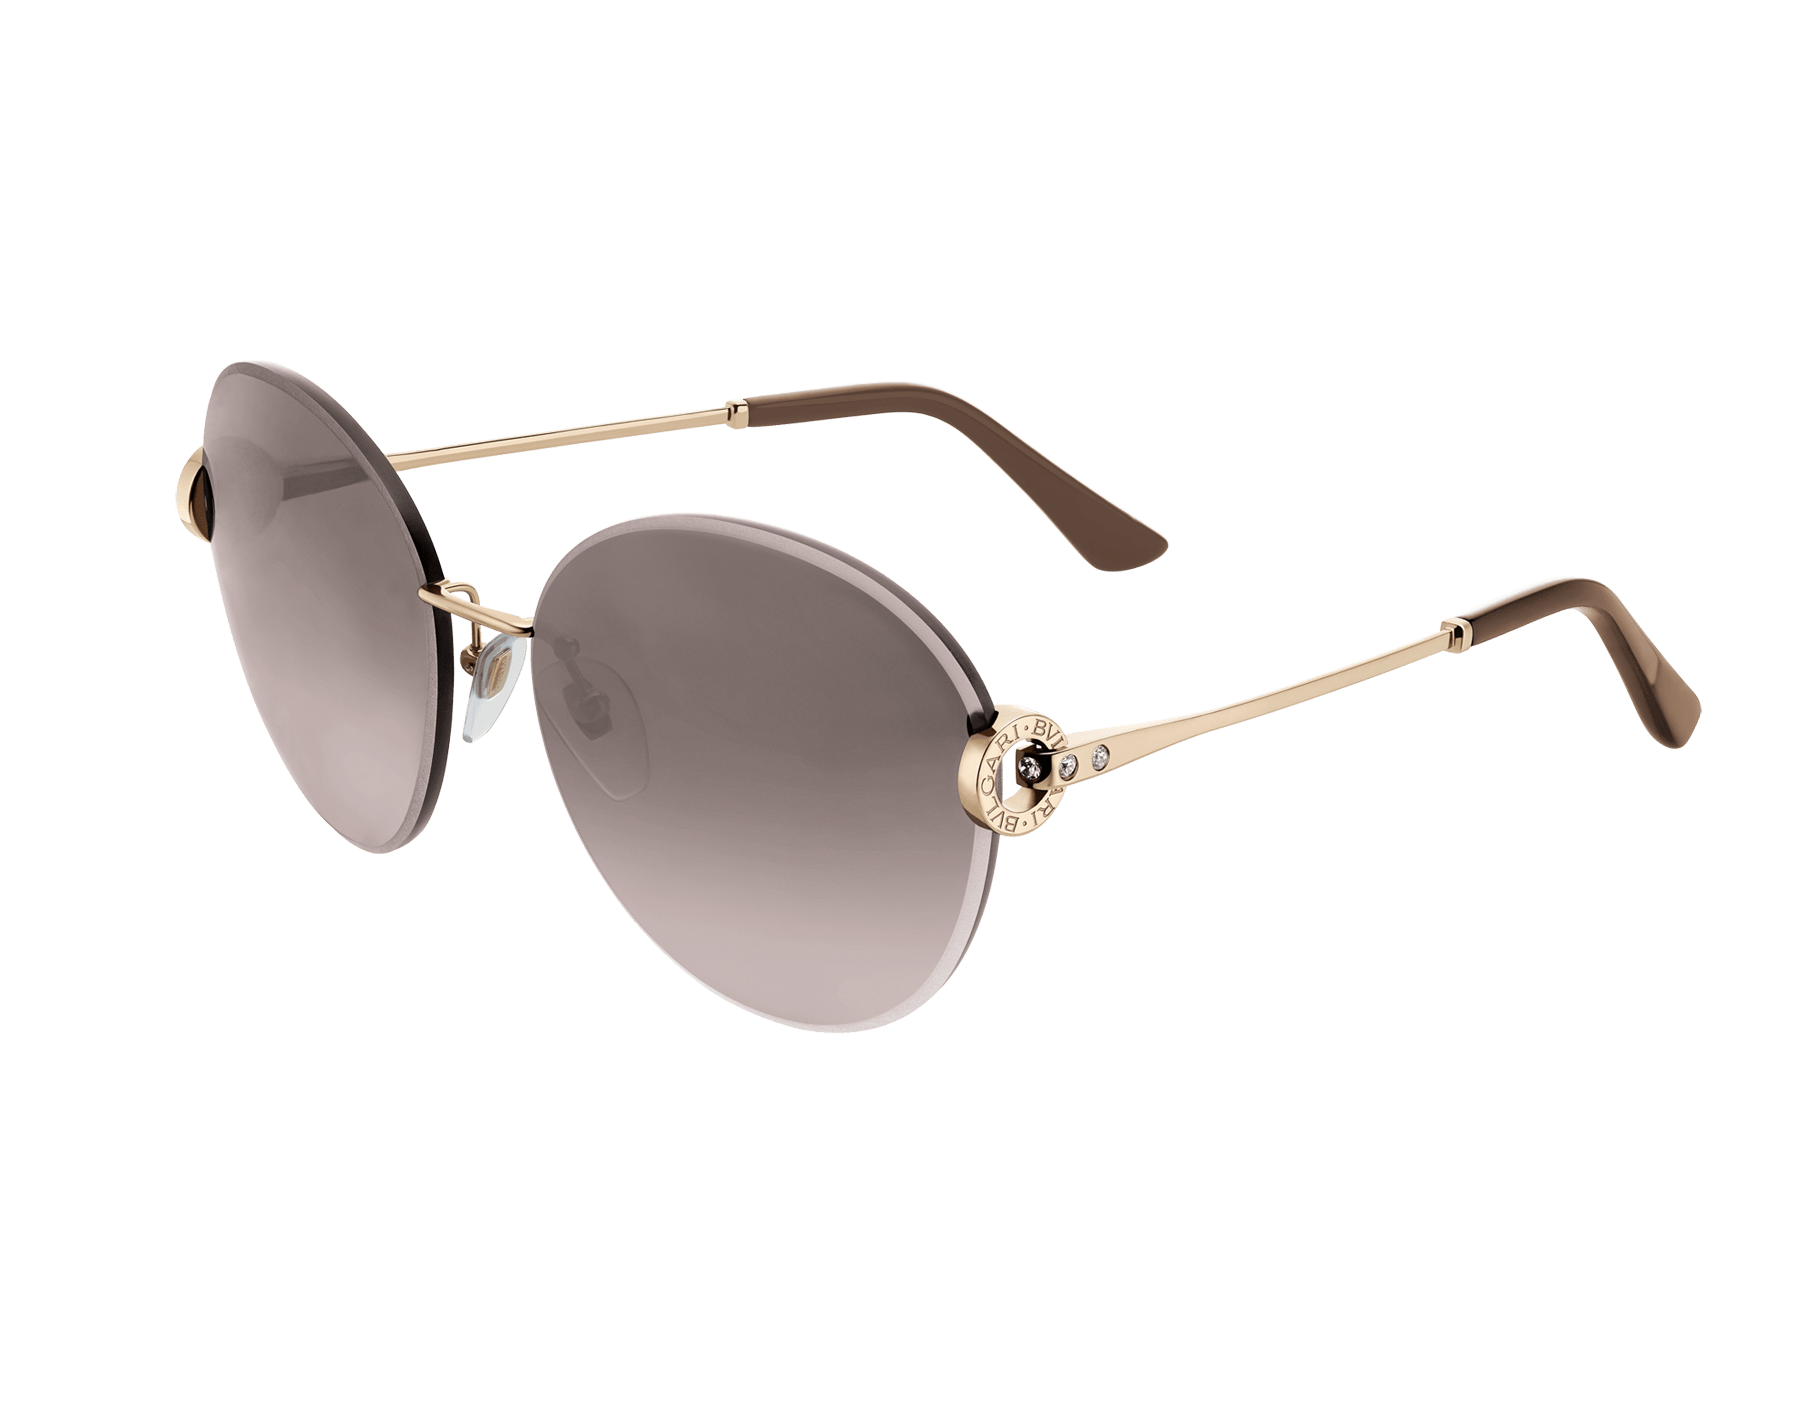 BVLGARI BVLGARI oversize rounded metal sunglasses with metal décor and crystals. 903806 image 1